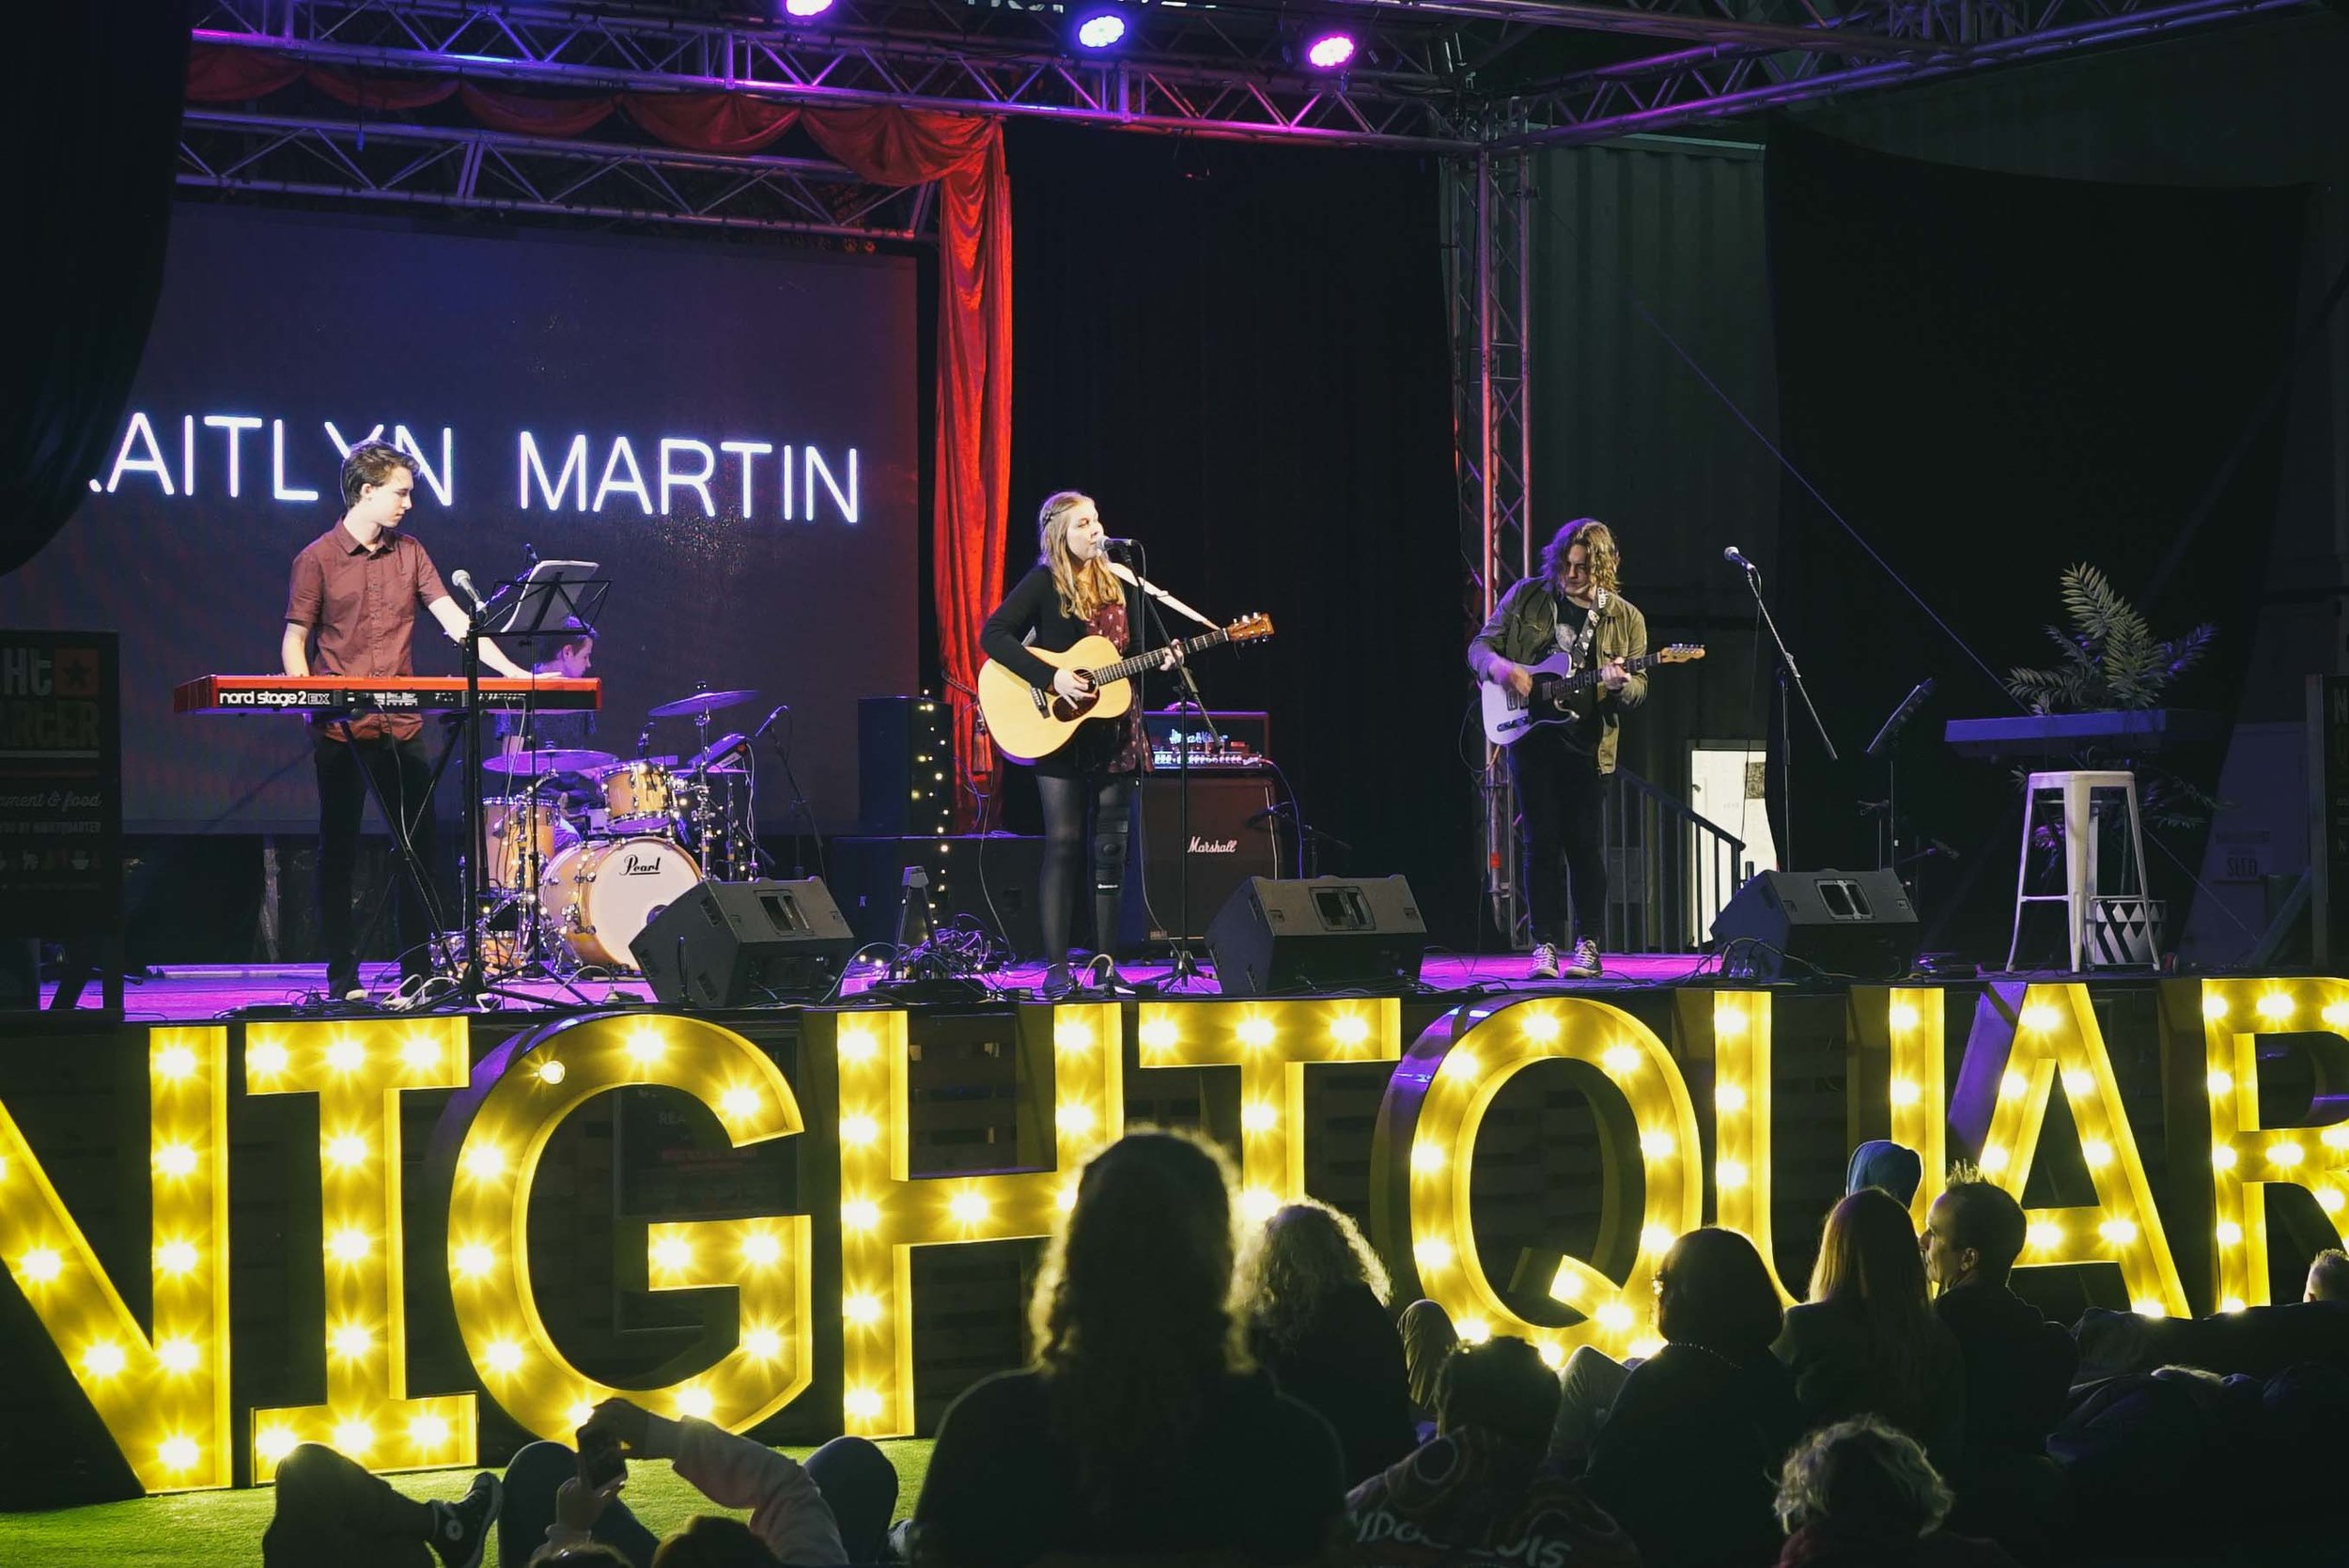 Kaitlyn Martin and band at NightQuarter 2018